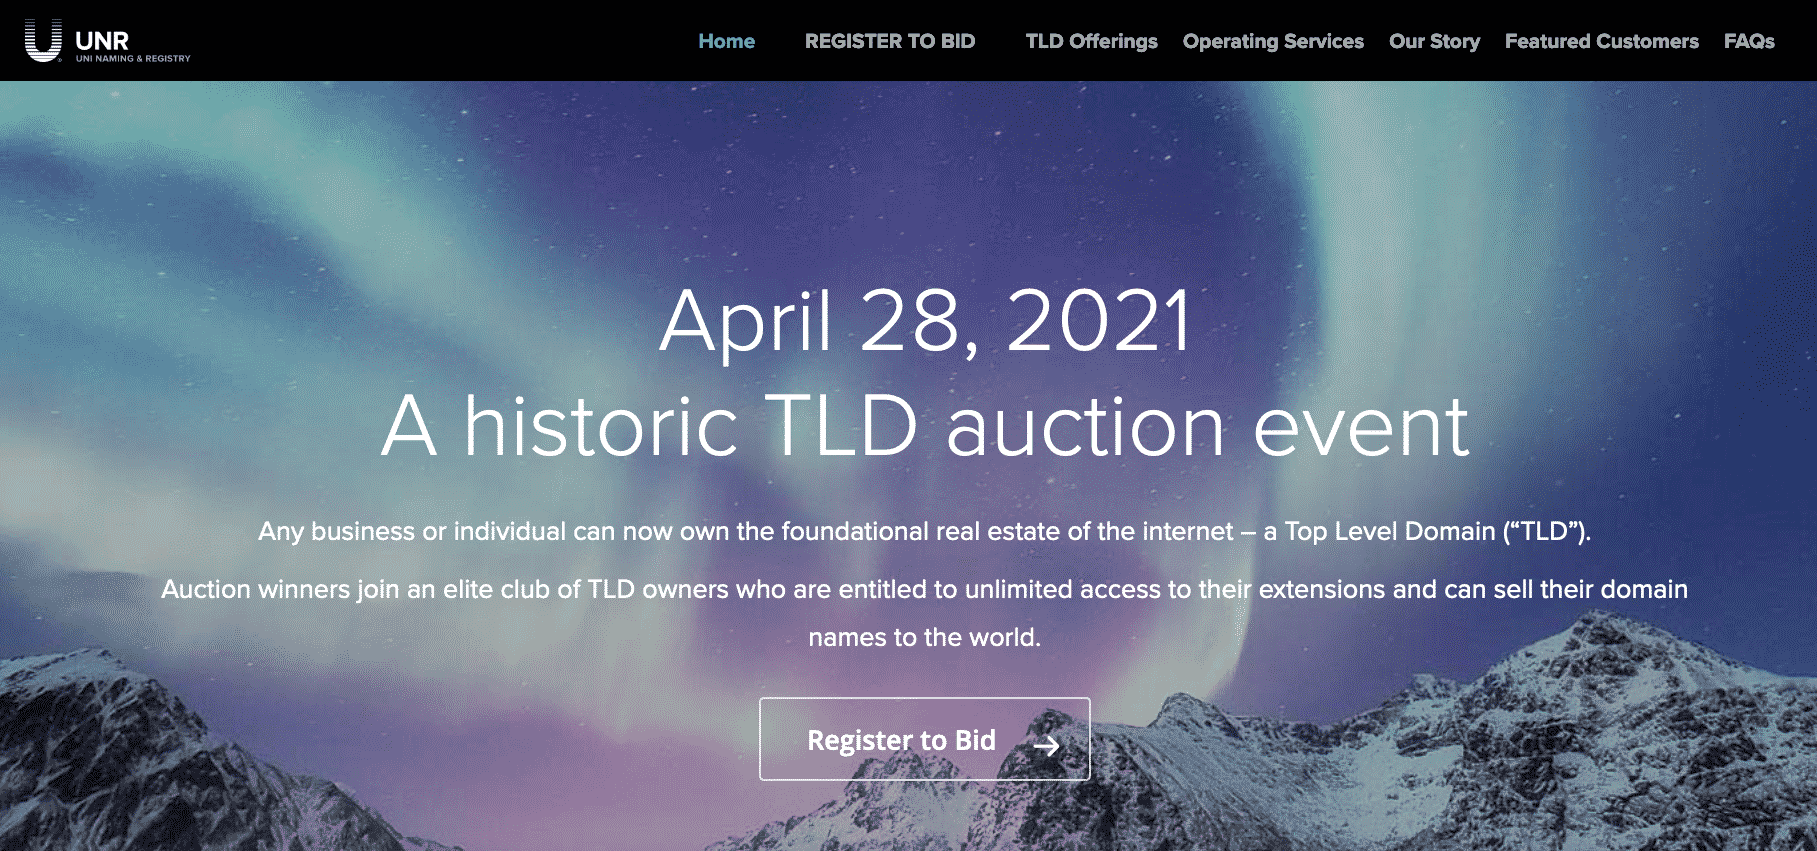 Top Level Domain TLD Auction